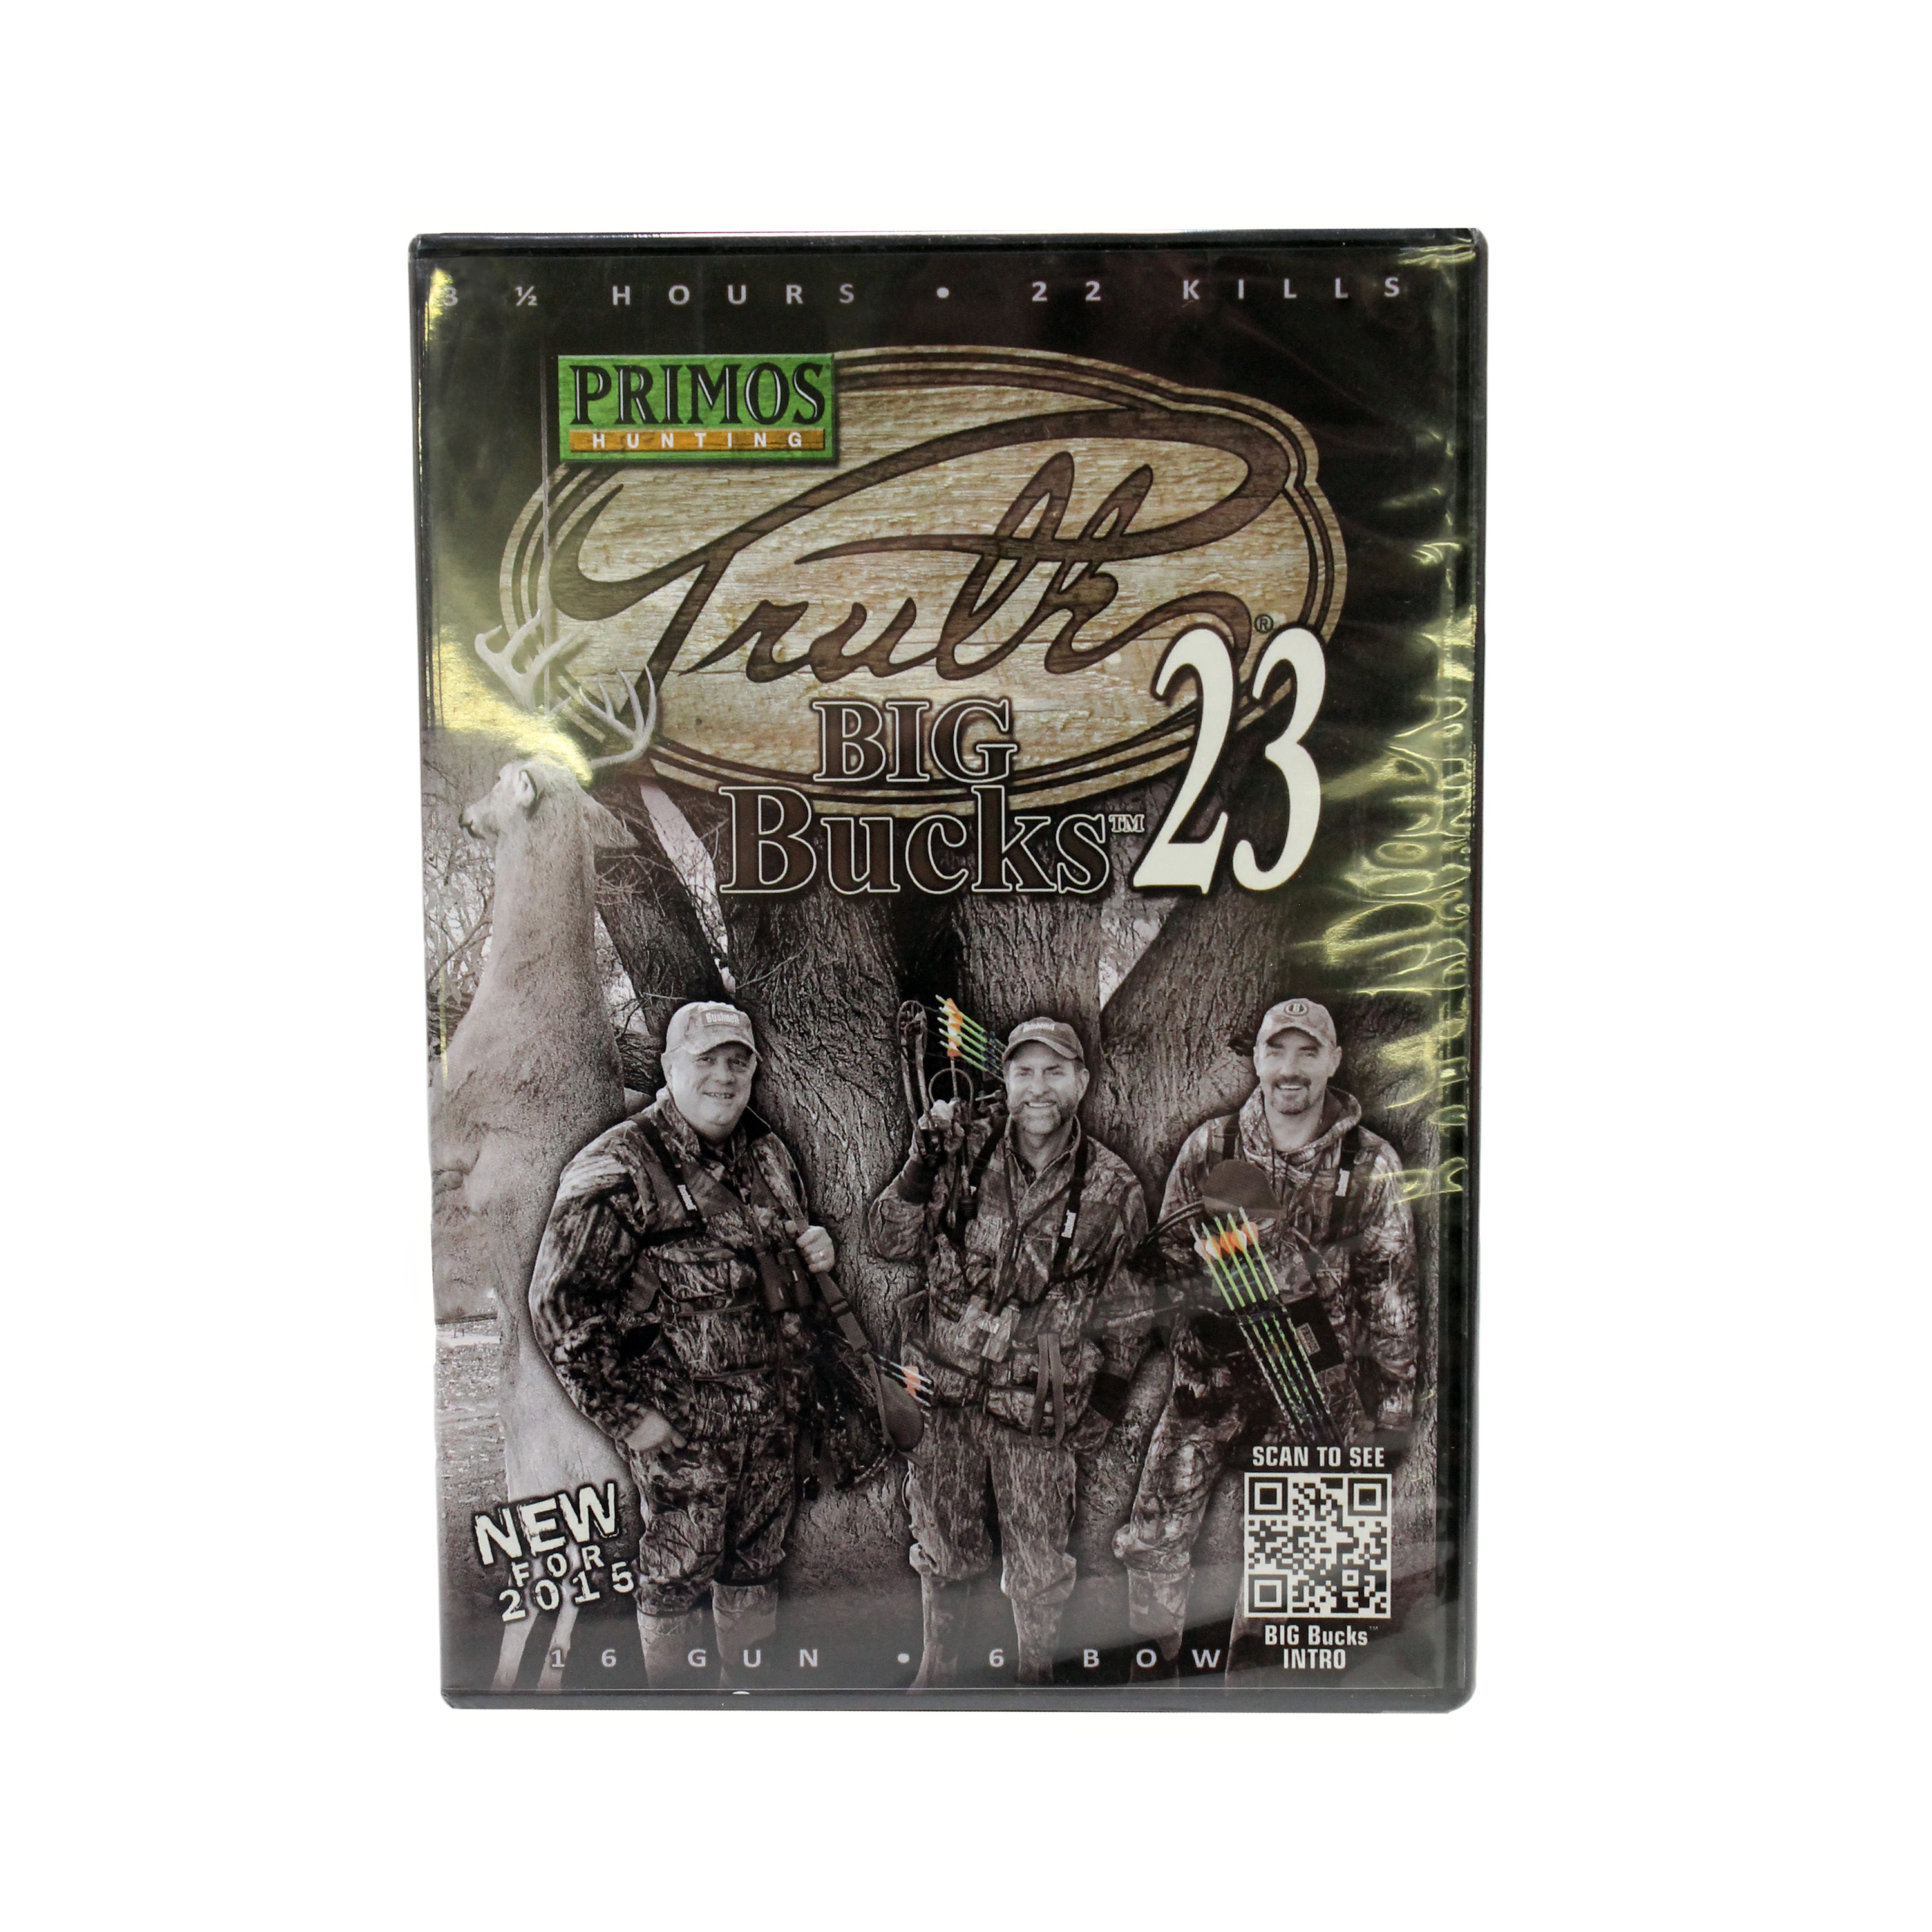 Primos The TRUTH 23 Big Bucks, DVD by Primos